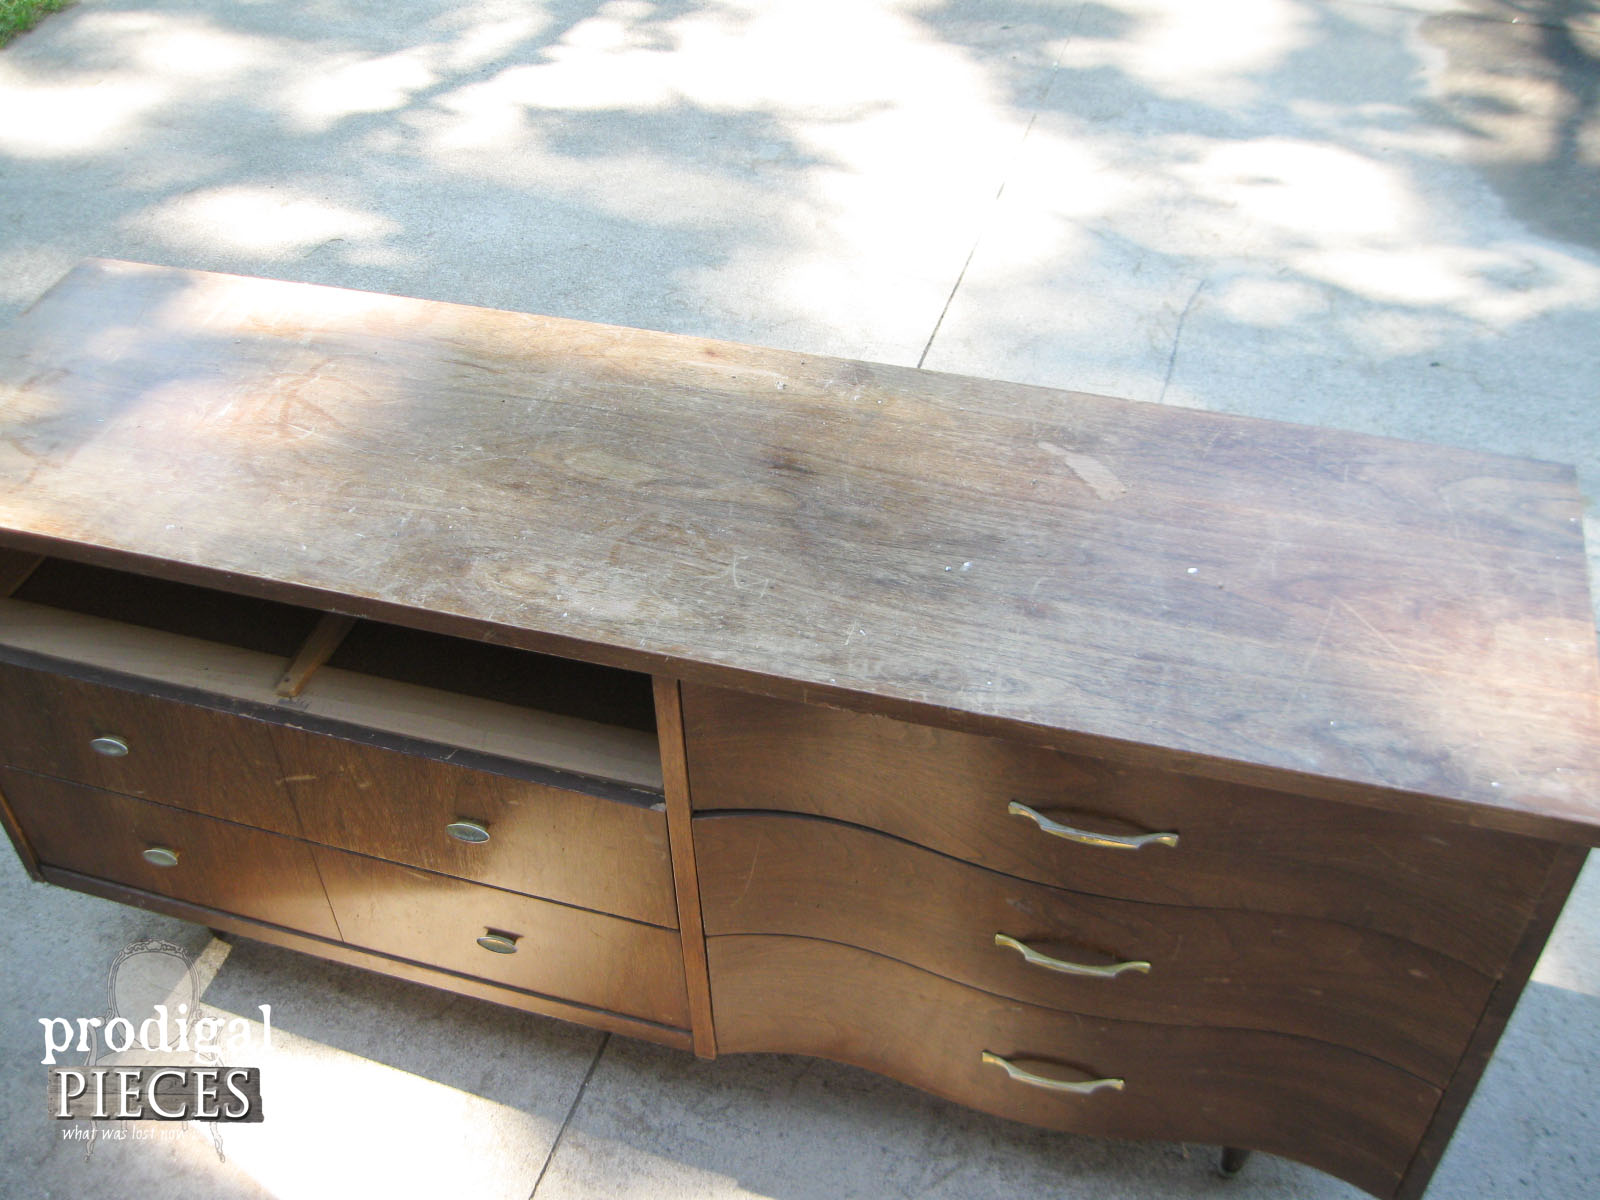 Badly Worn Top of Mid Century Credenza | Prodigal Pieces | www.prodigalpieces.com